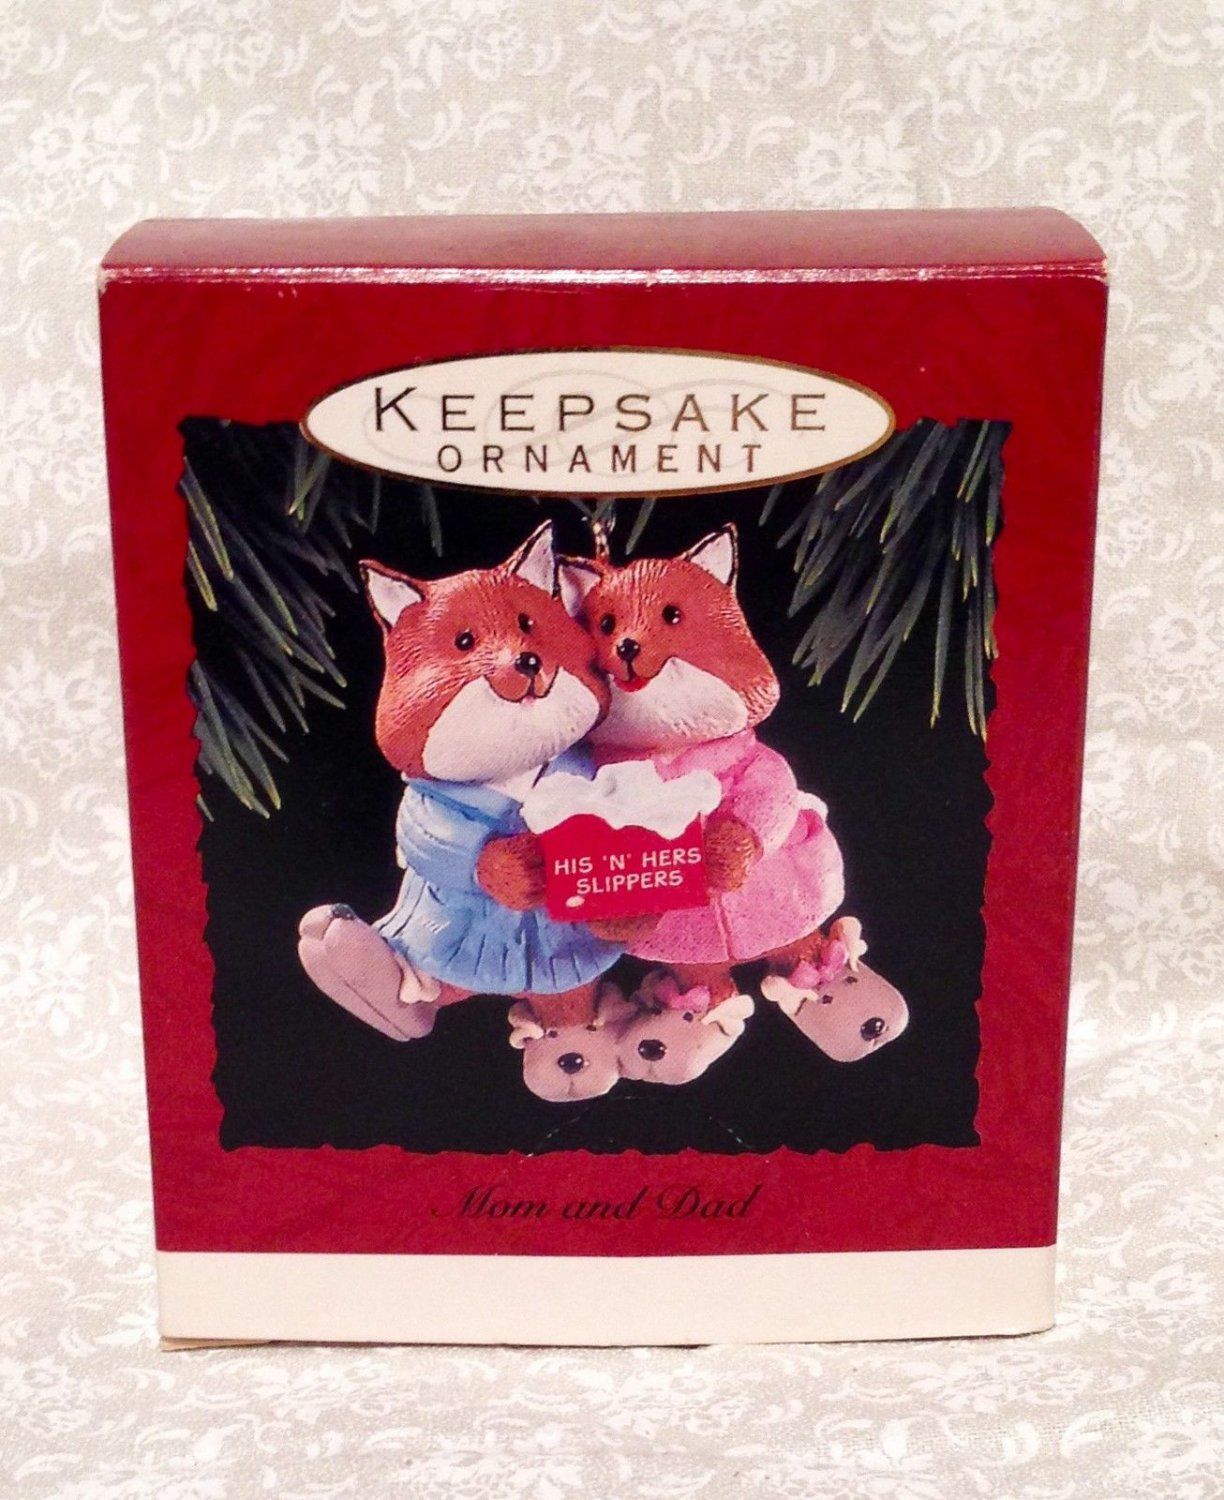 NEW BOX Hallmark Christmas Ornament MOM AND DAD Fox Couple His 'n Hers Slippers